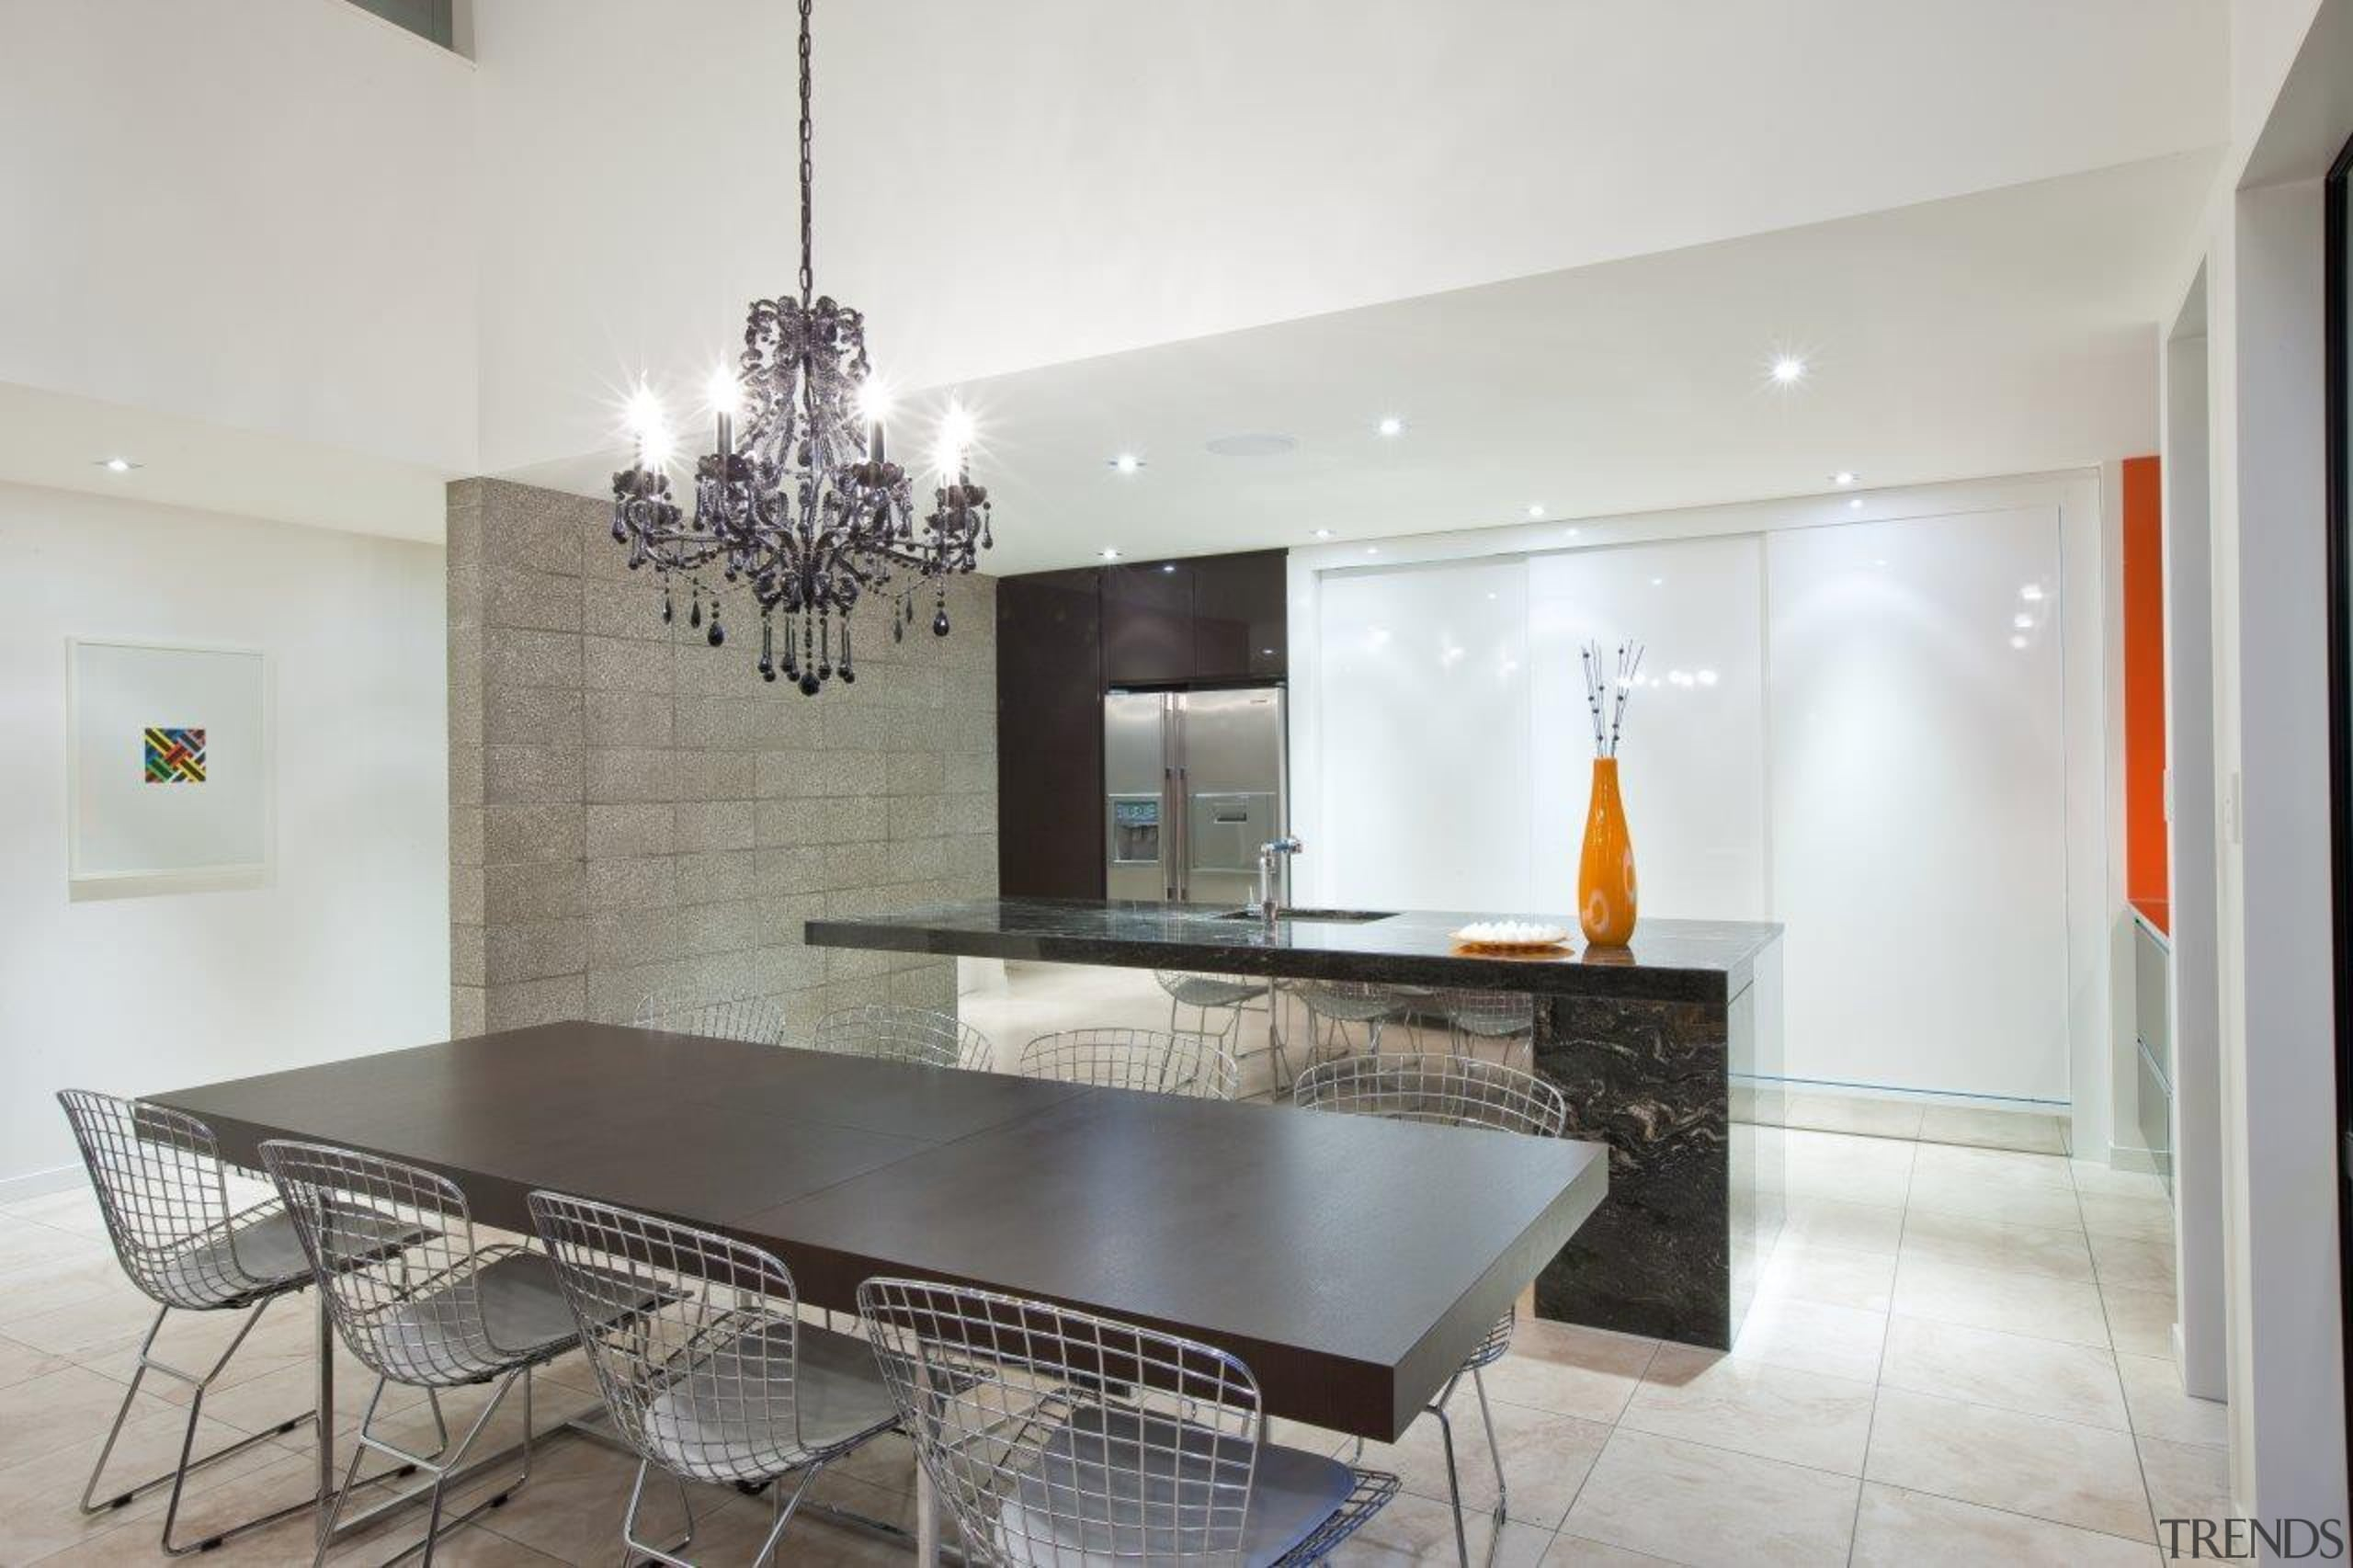 wellingtong kitchen 3.jpg - wellingtong_kitchen_3.jpg - ceiling | ceiling, countertop, dining room, interior design, kitchen, property, real estate, table, gray, white